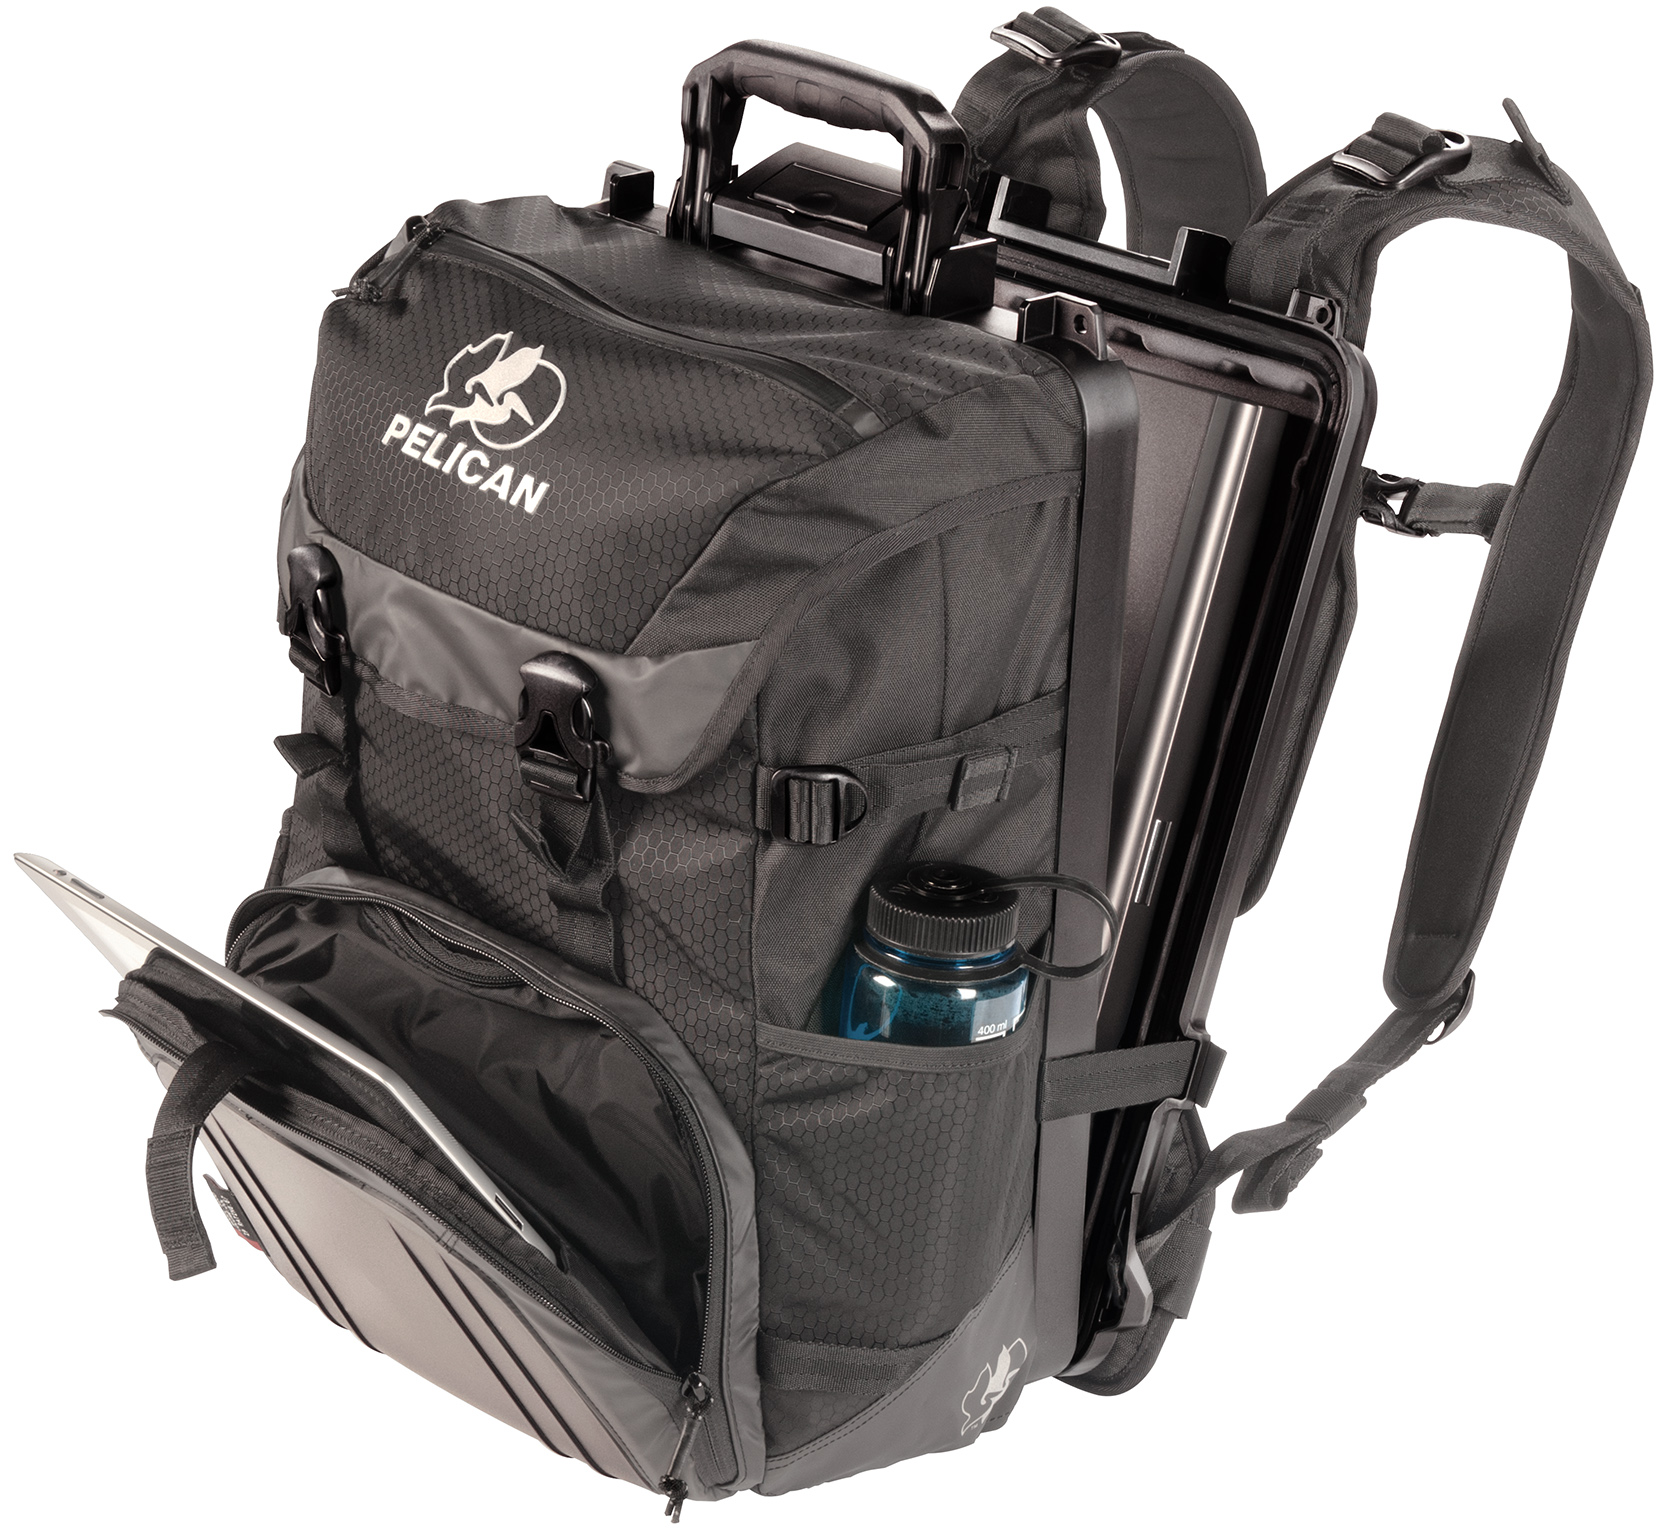 ProGear S100 Elite Laptop Backpack